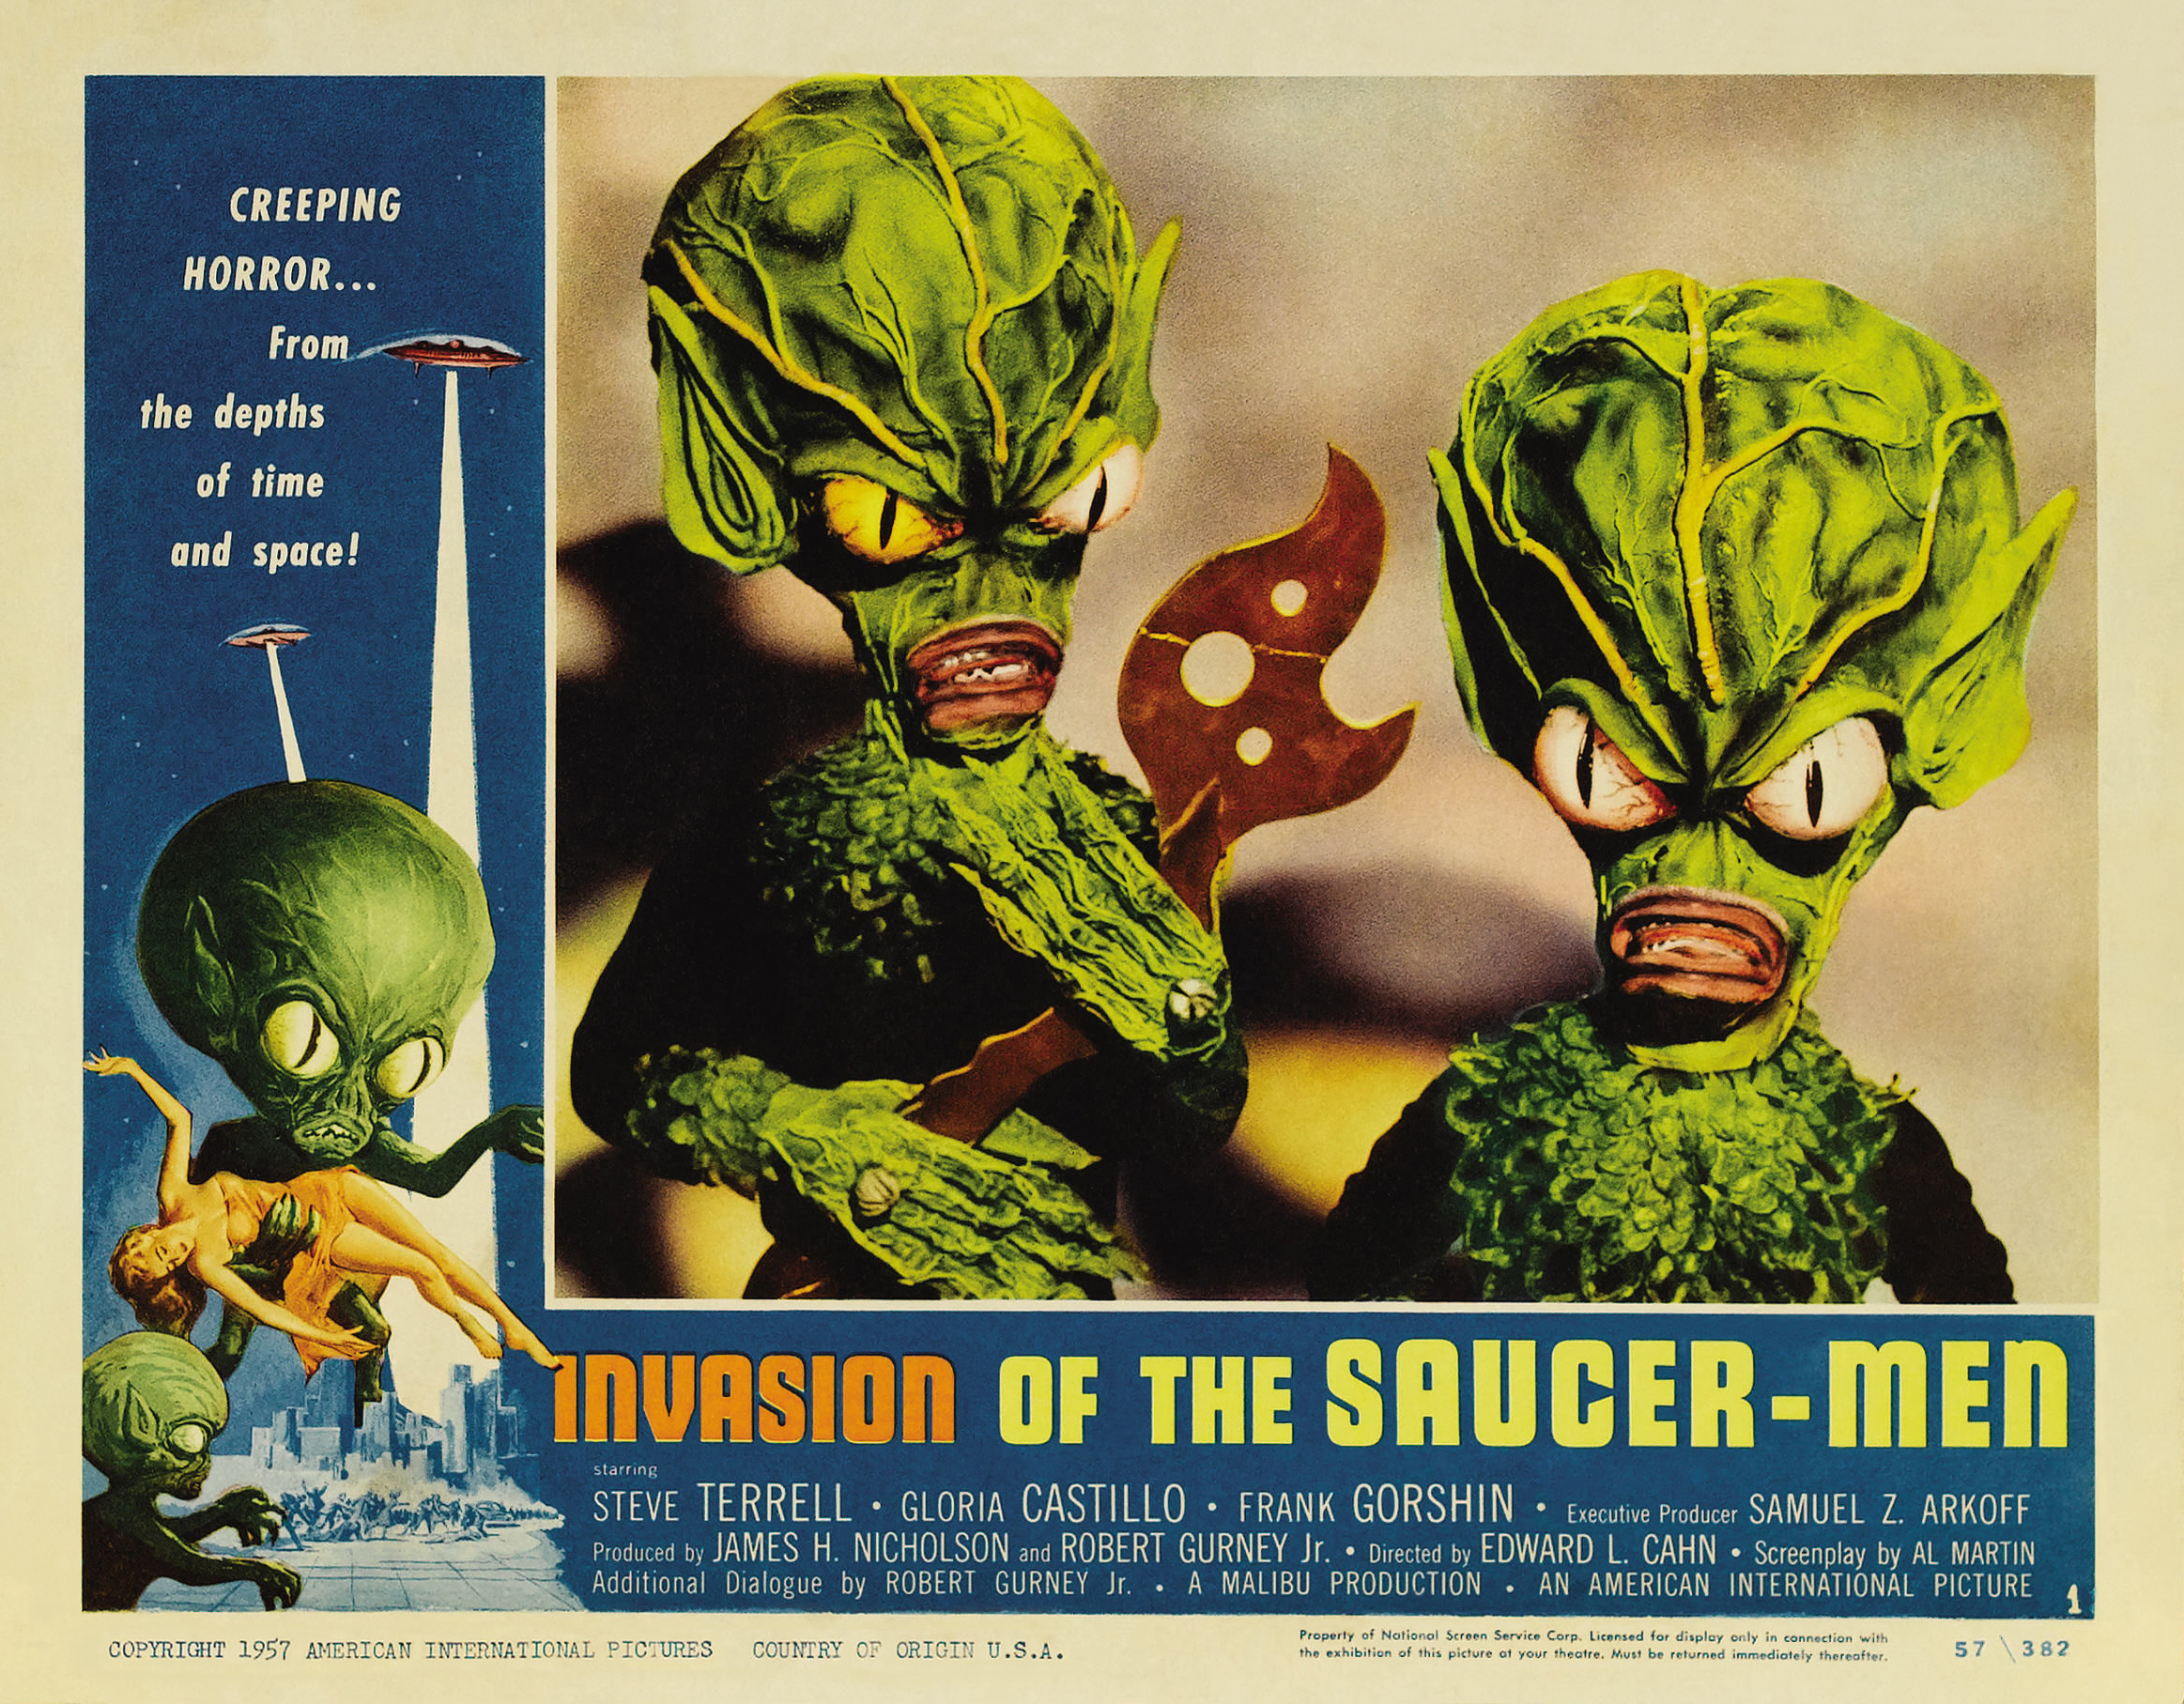 Invasion of the saucer men movie opinion